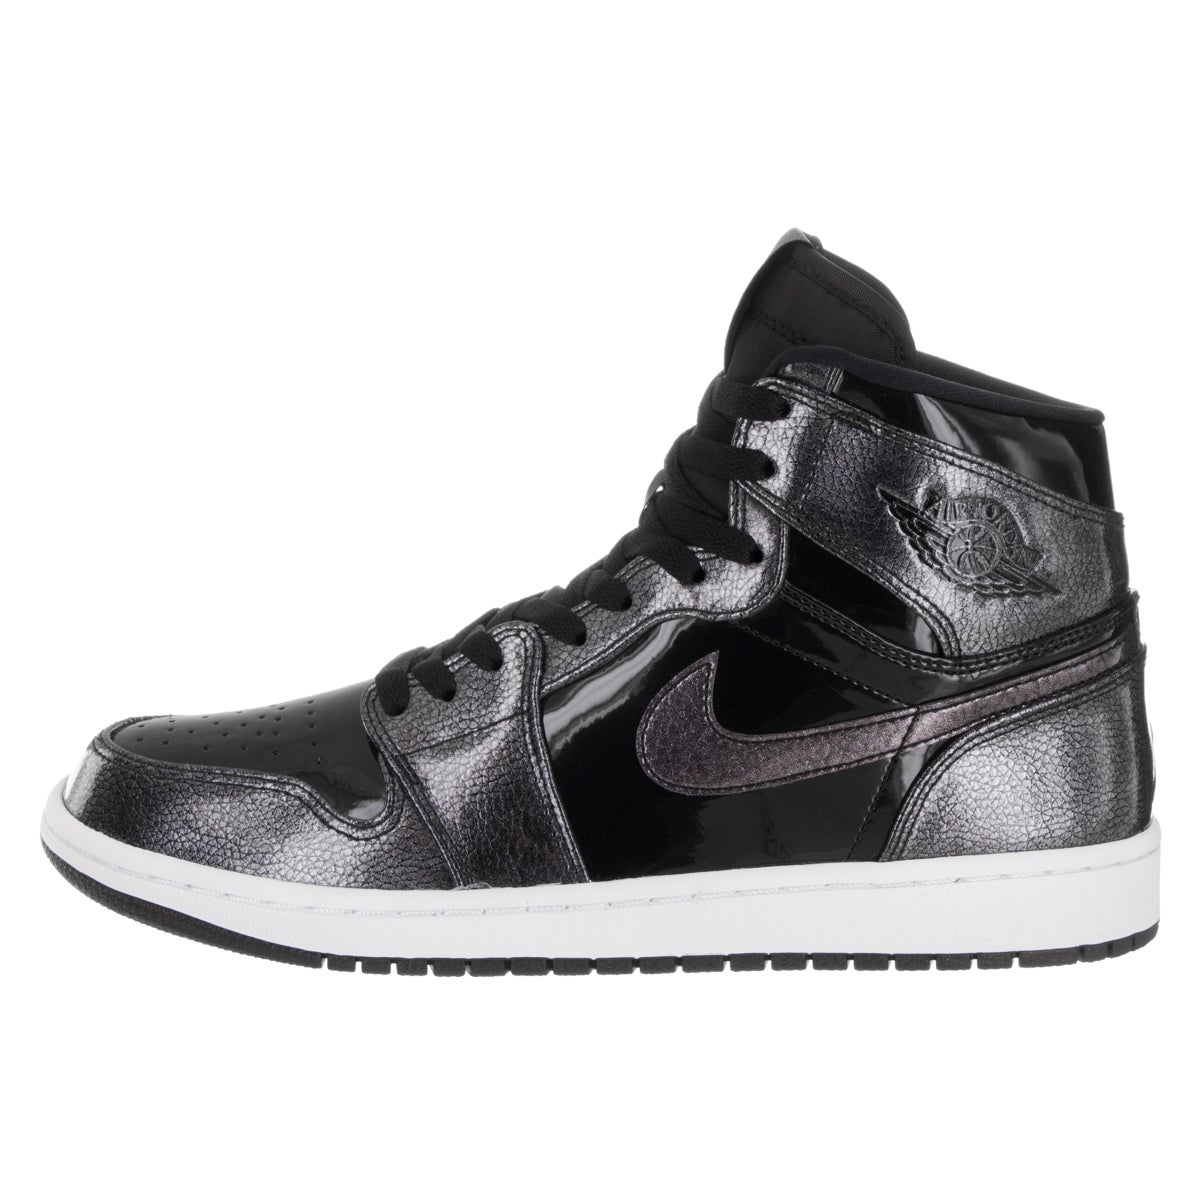 0aec9a28dd3437 Shop Nike Jordan Men s Air Jordan 1 Black Patent Leather Retro High  Basketball Shoe - Free Shipping Today - Overstock - 13620729